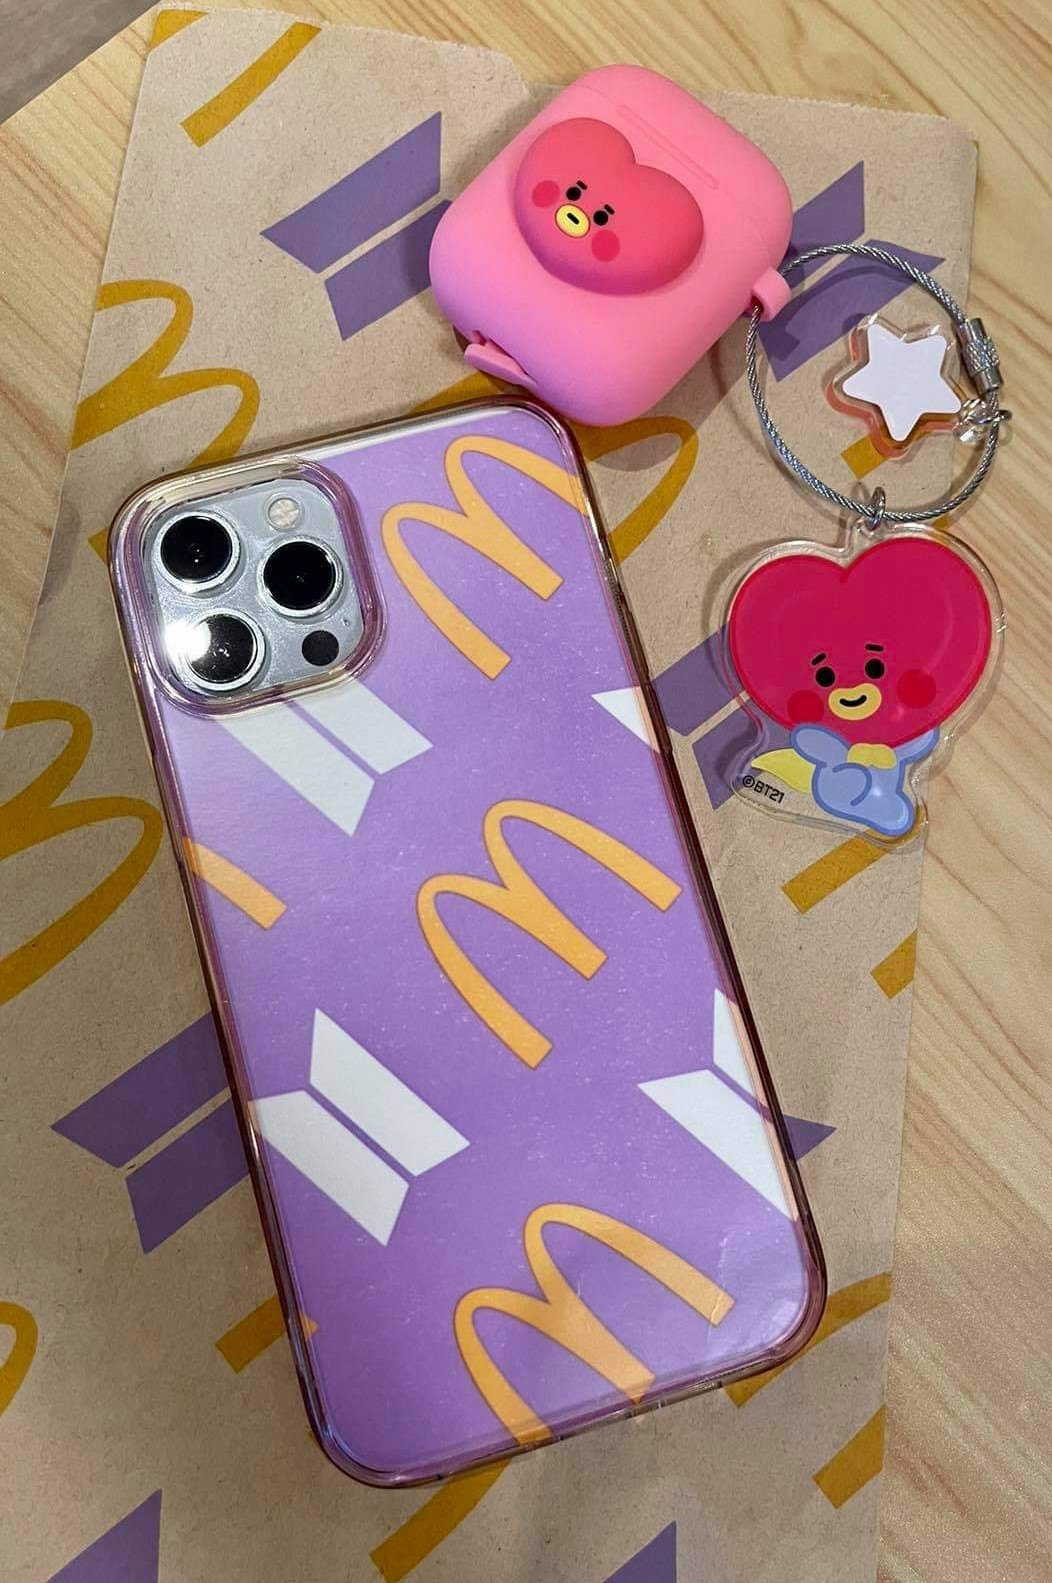 How to create DIY merch using The BTS Meal